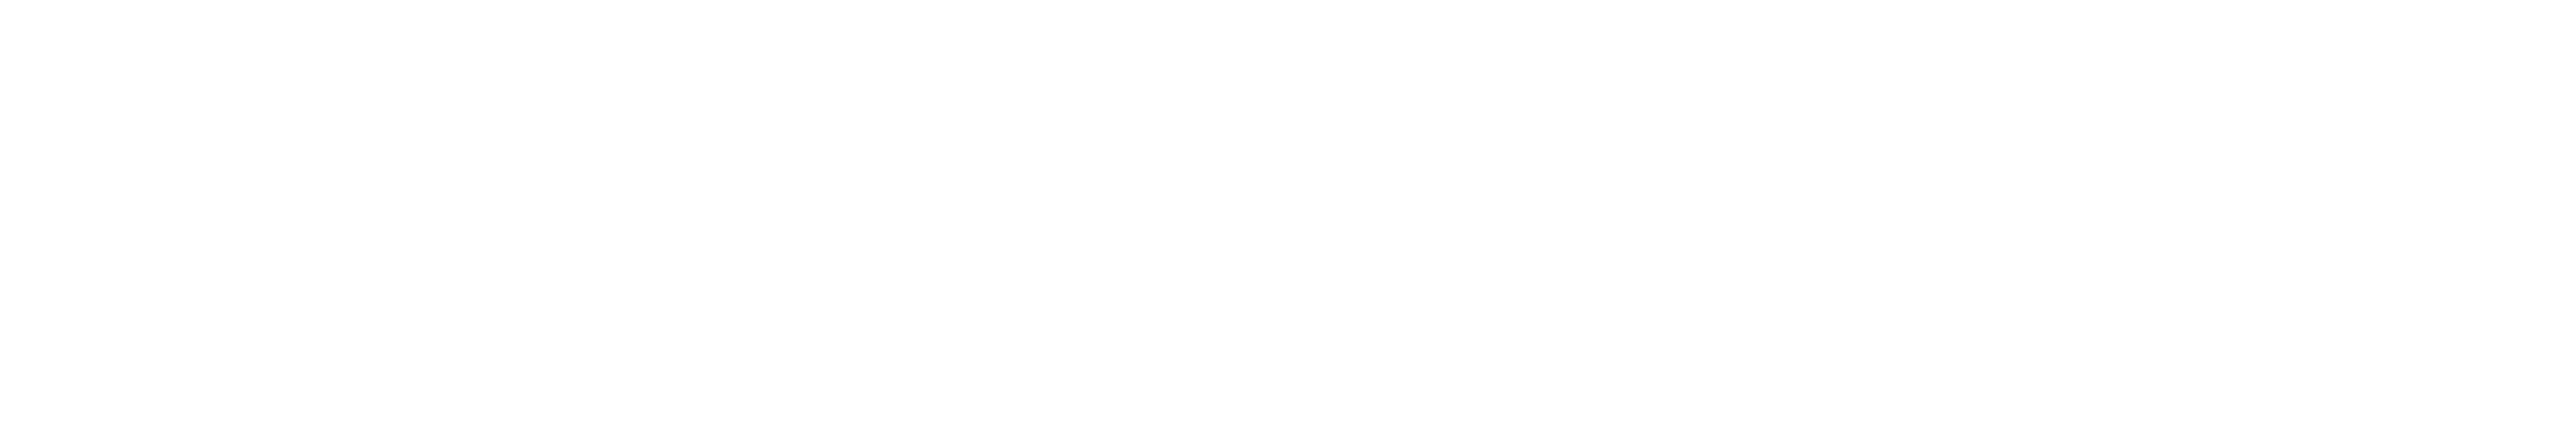 storage-craft-logo1.png